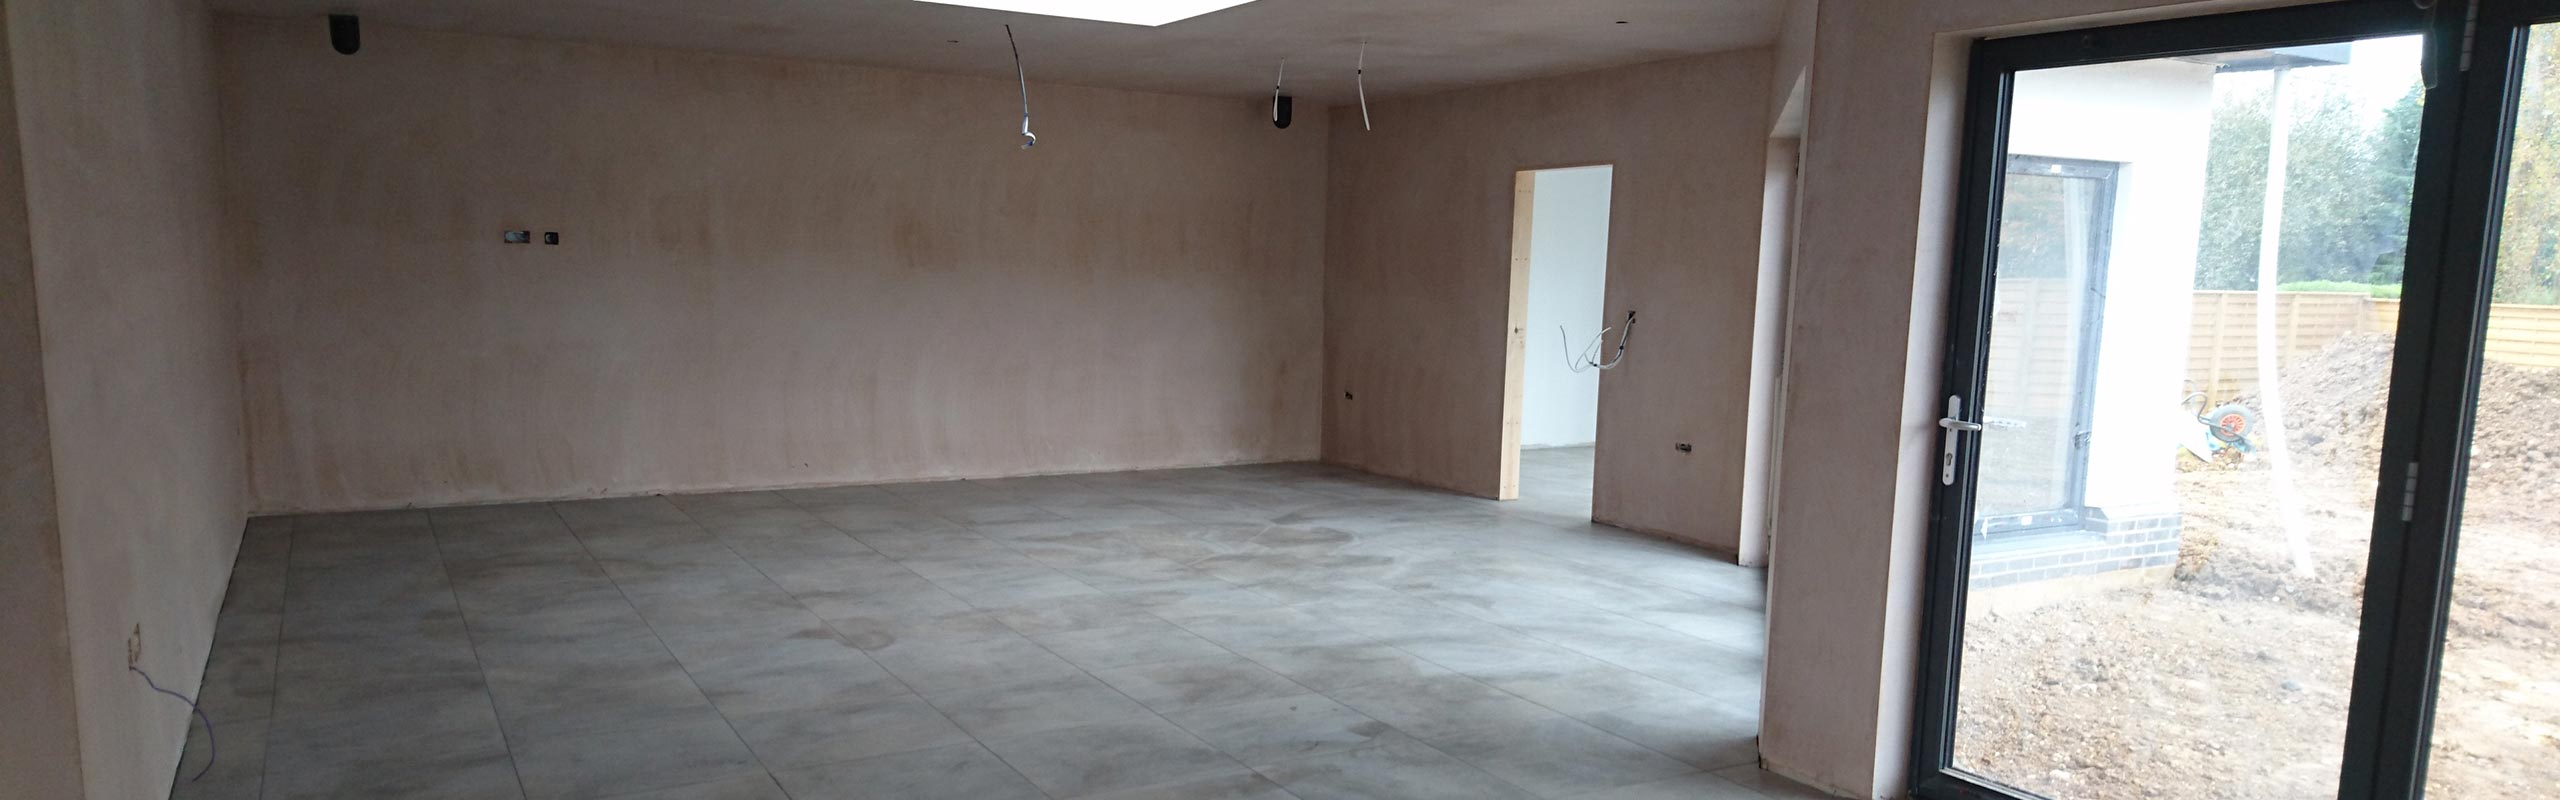 A board-skimmed room in a new build house.